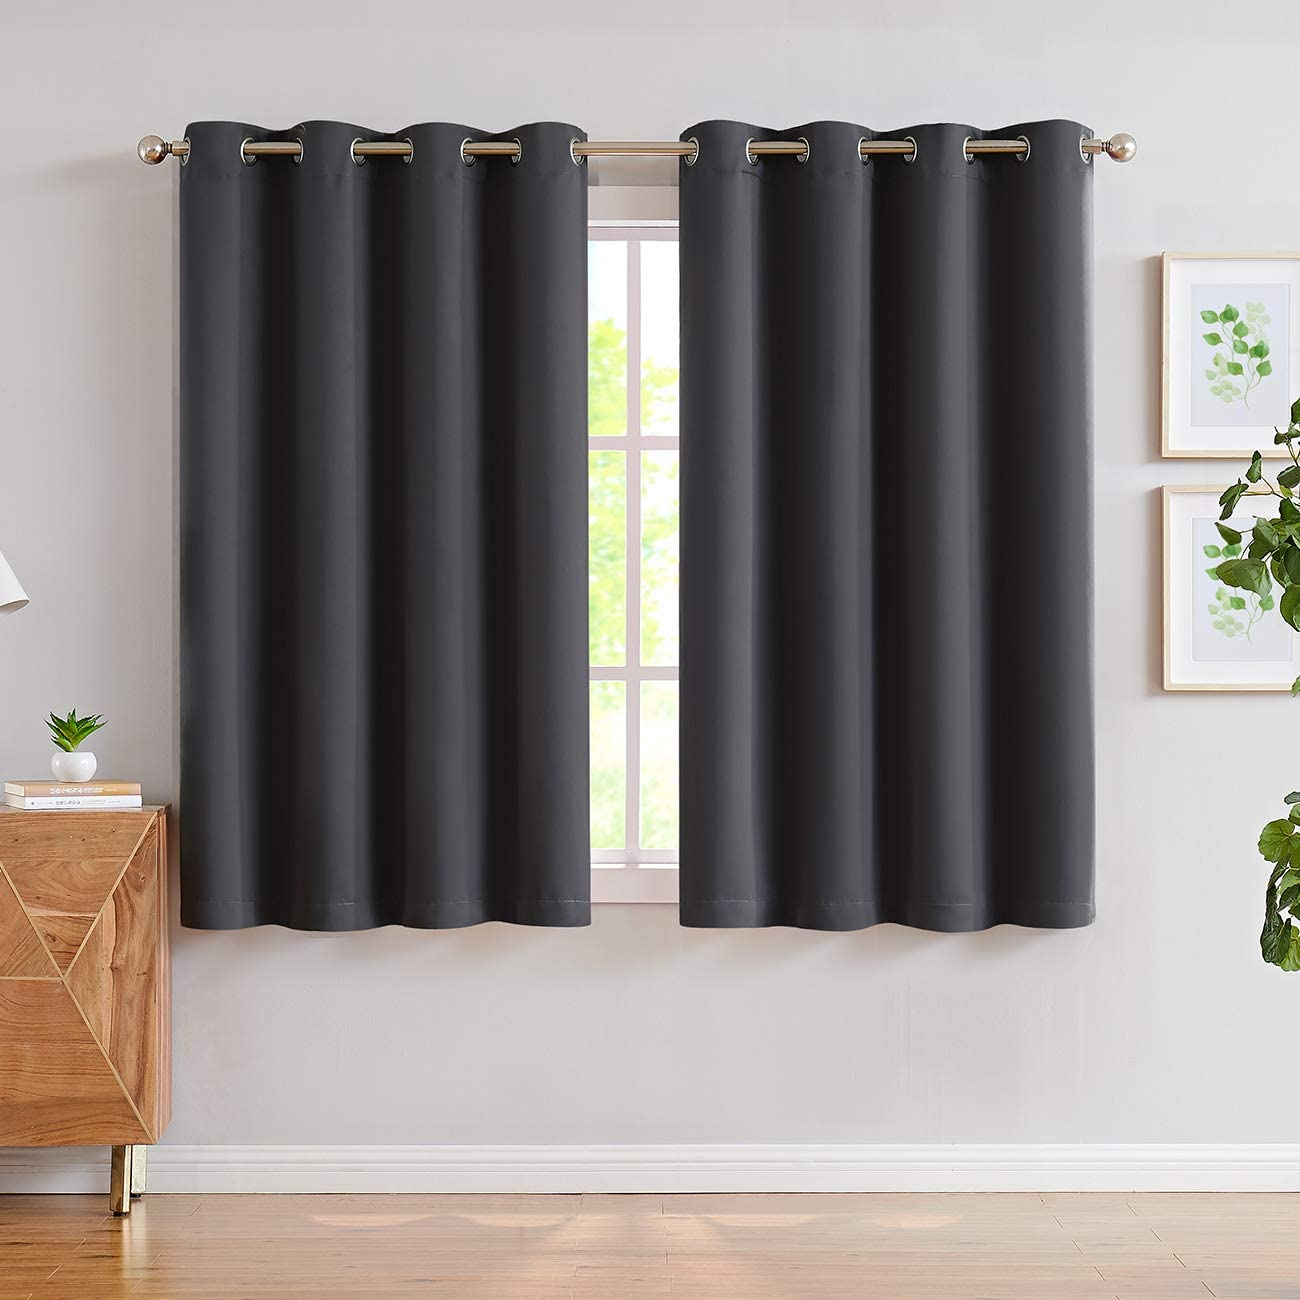 JUNFR Blackout Curtains 2 Panels Set - Indoor/Outdoor Thermal Insulated Solid Grommet Room Darkening Drapery for Living Room Small Window (Dark Gray, 52Wx63L)